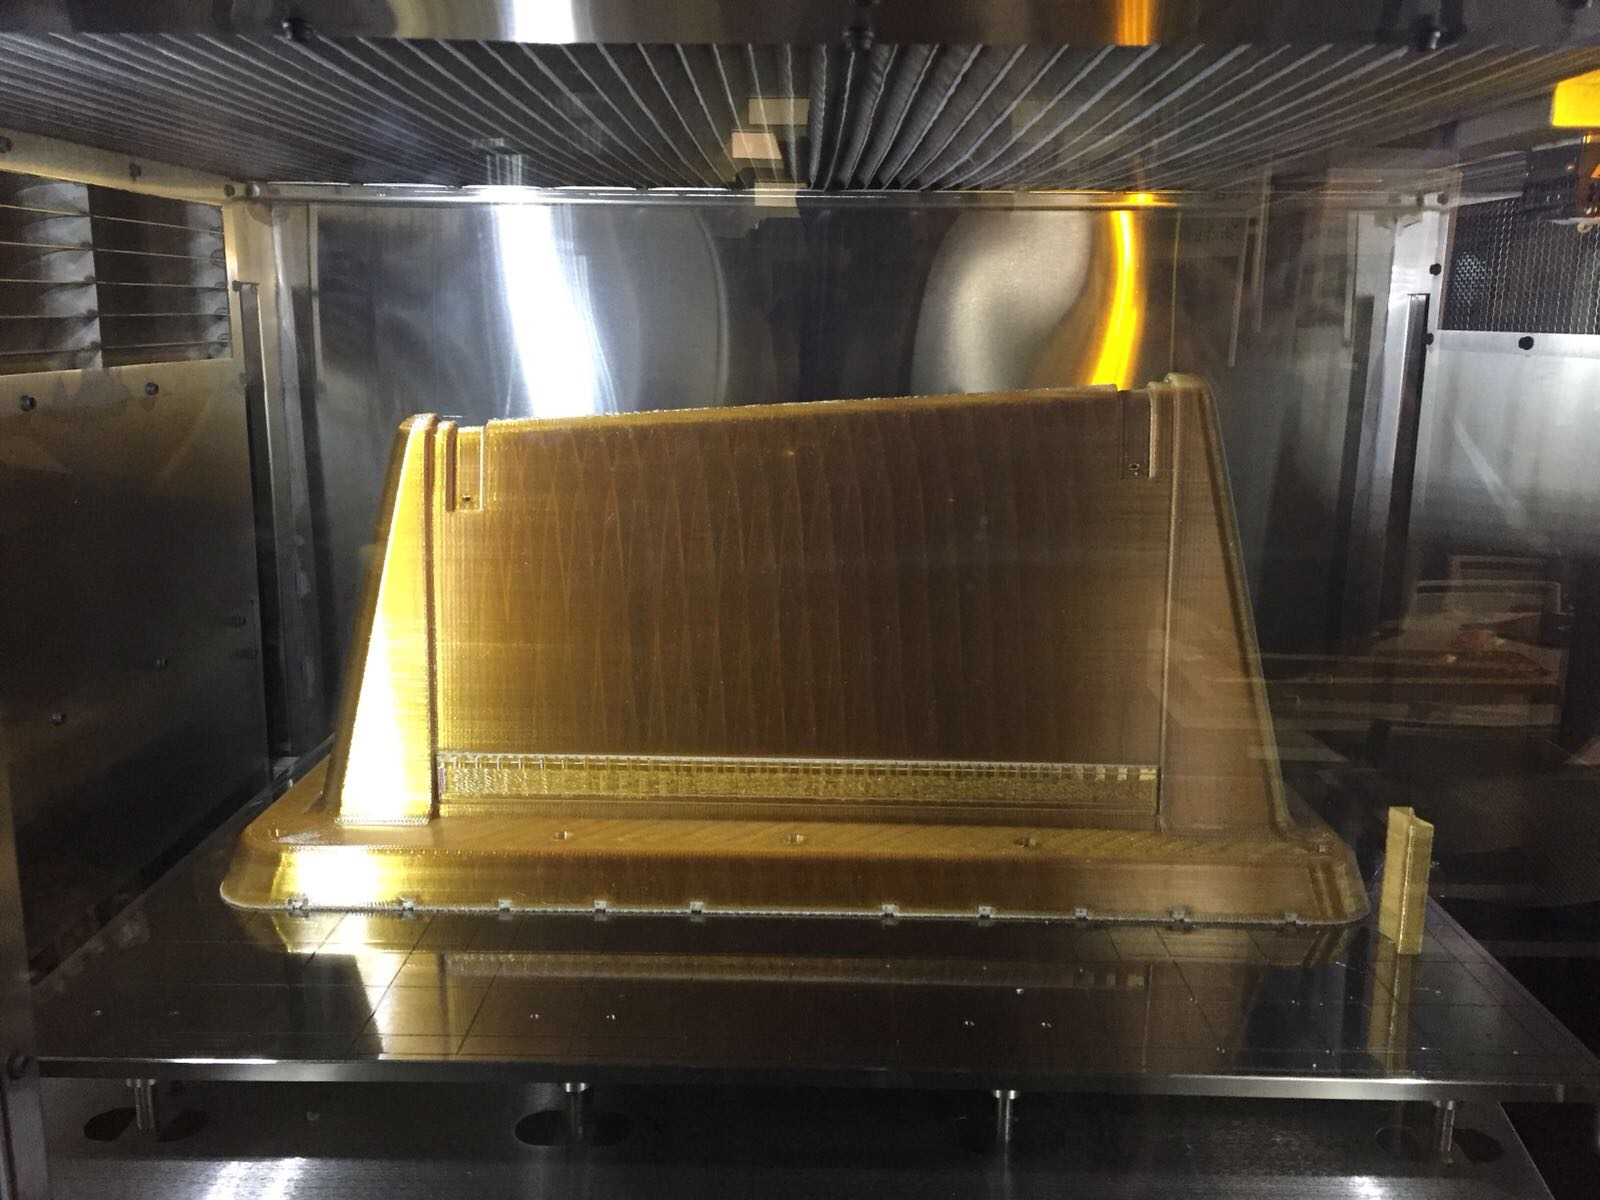 Preform tool produced with the Stratasys F900 Production System using ULTEM™ 1010 resin. Photo via Stratasys.